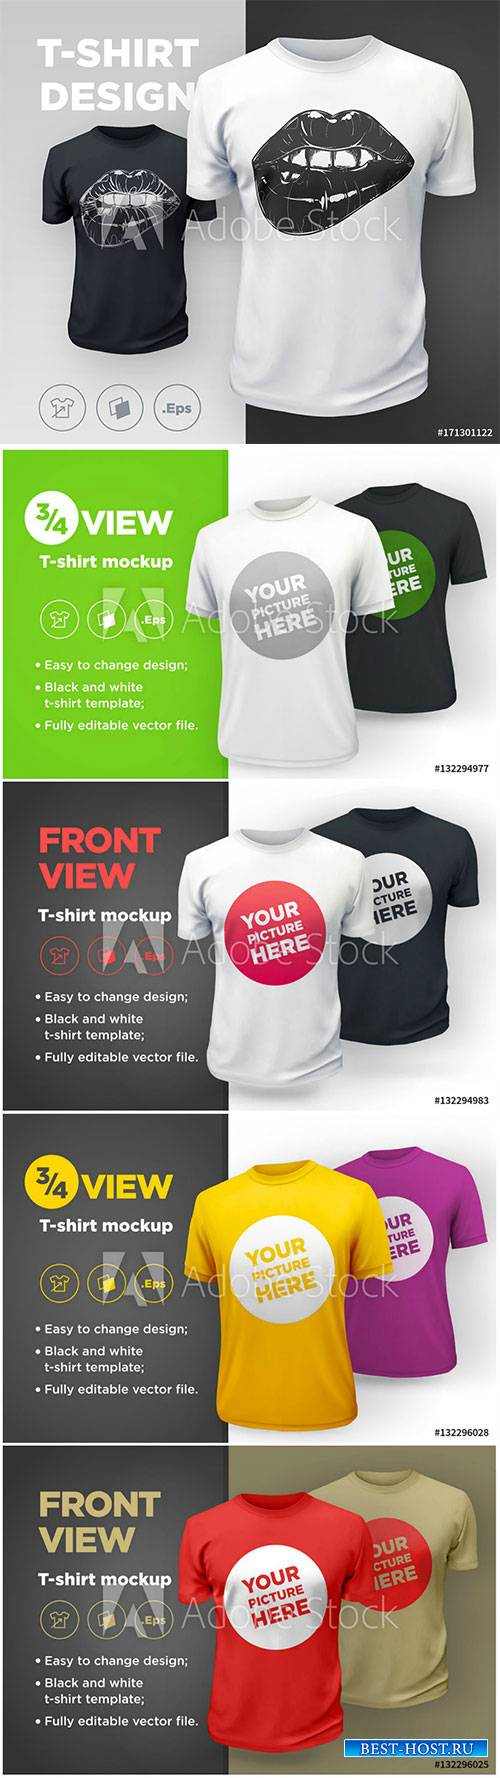 Men's t-shirt with short sleeve mockup vector illustration